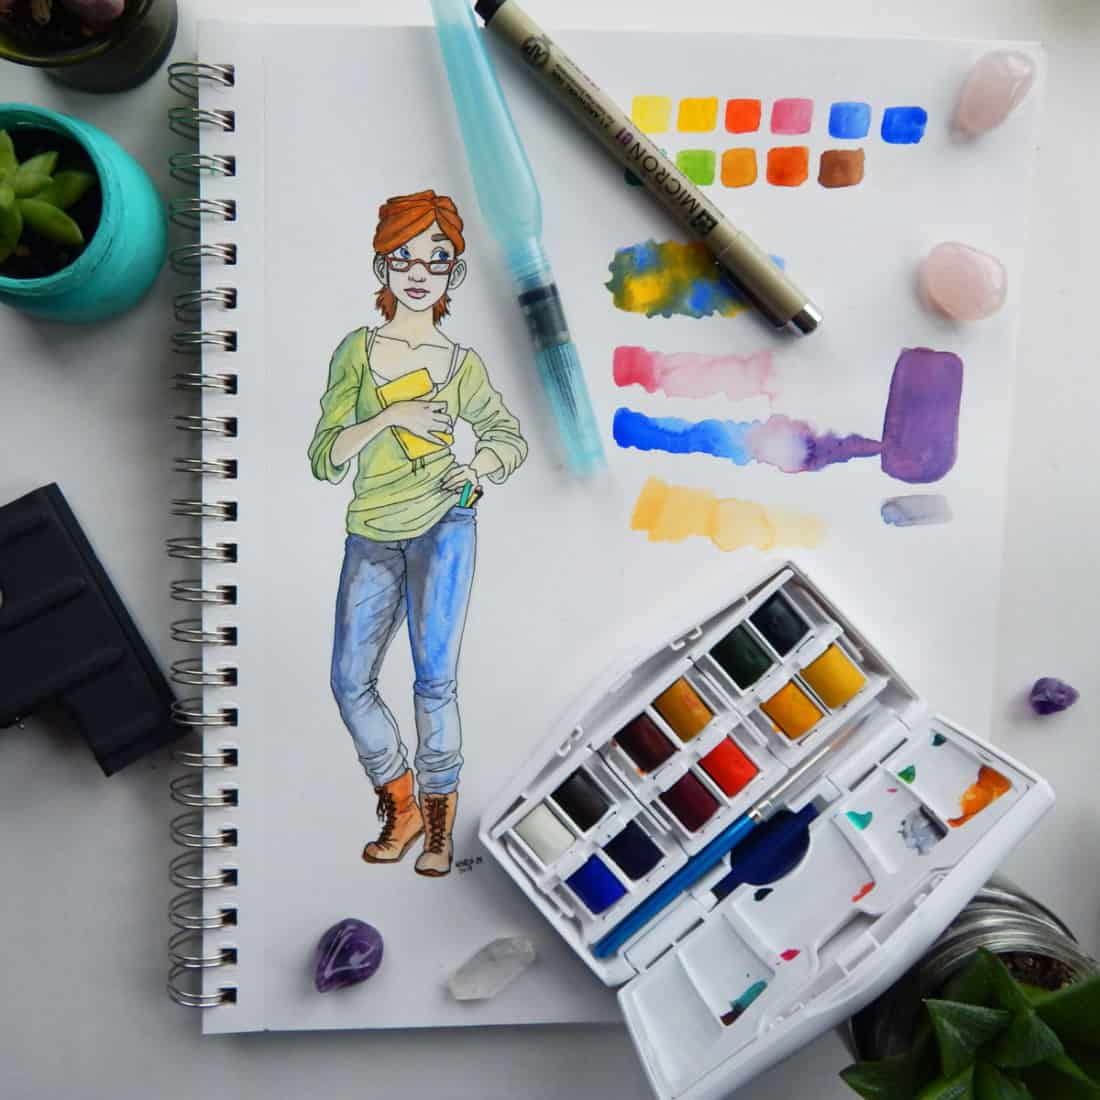 The Best Watercolor Supplies for Beginners - What You Need to Start